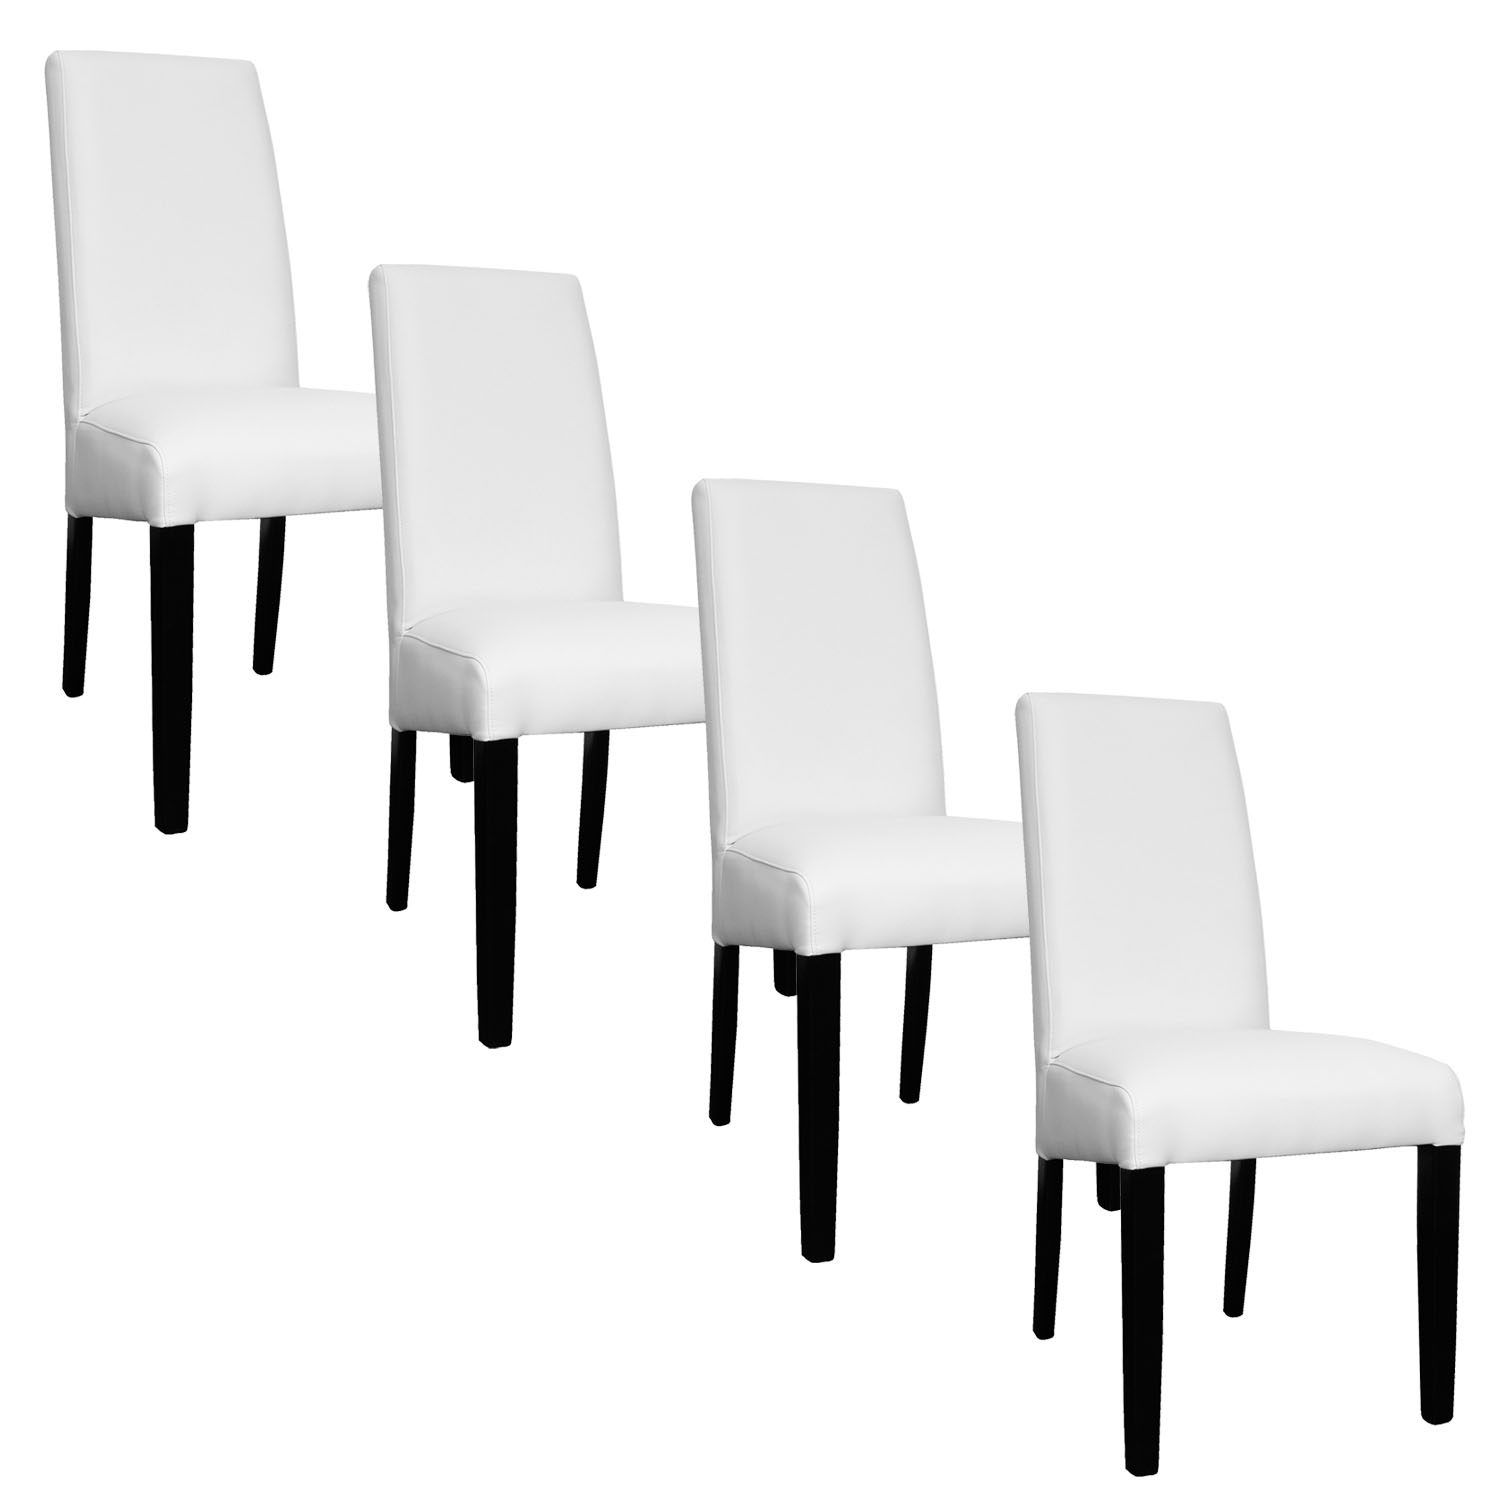 Deco in paris lot de 4 chaises blanche muka muka x4 blanc for Chaise blanche